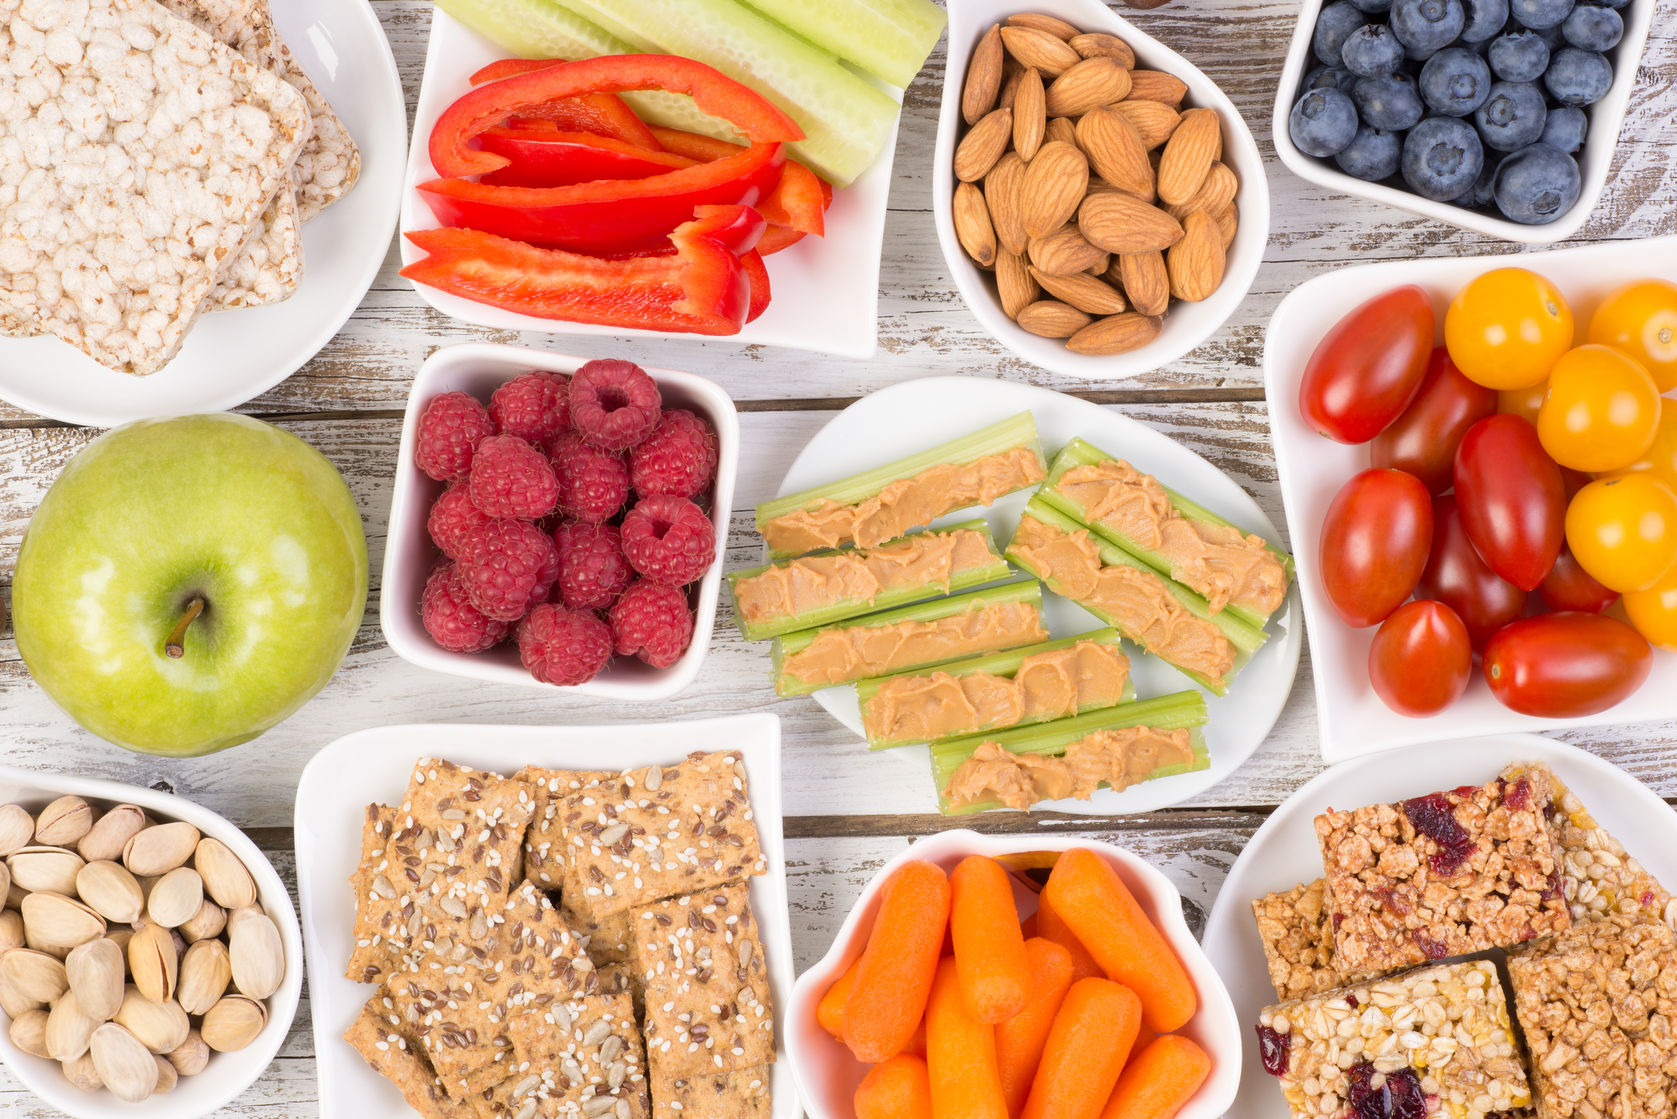 healthy snacks on wooden table, top view